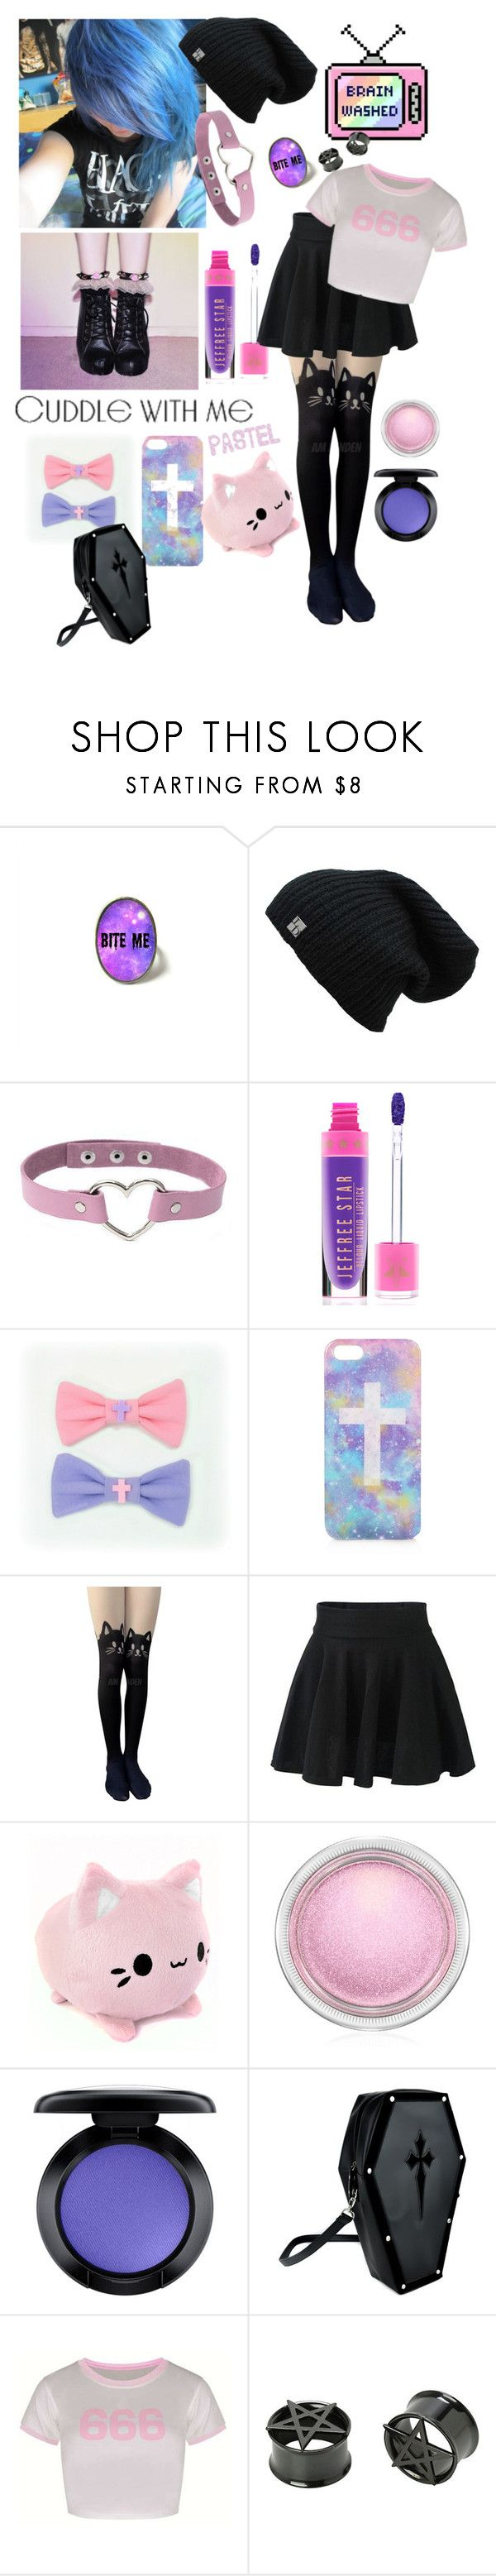 One of my Favorite Pastel Goth Sets Now that Ive Made by crybaby1117 ❤ liked on Polyvore featuring Topshop and MAC Cosmetics